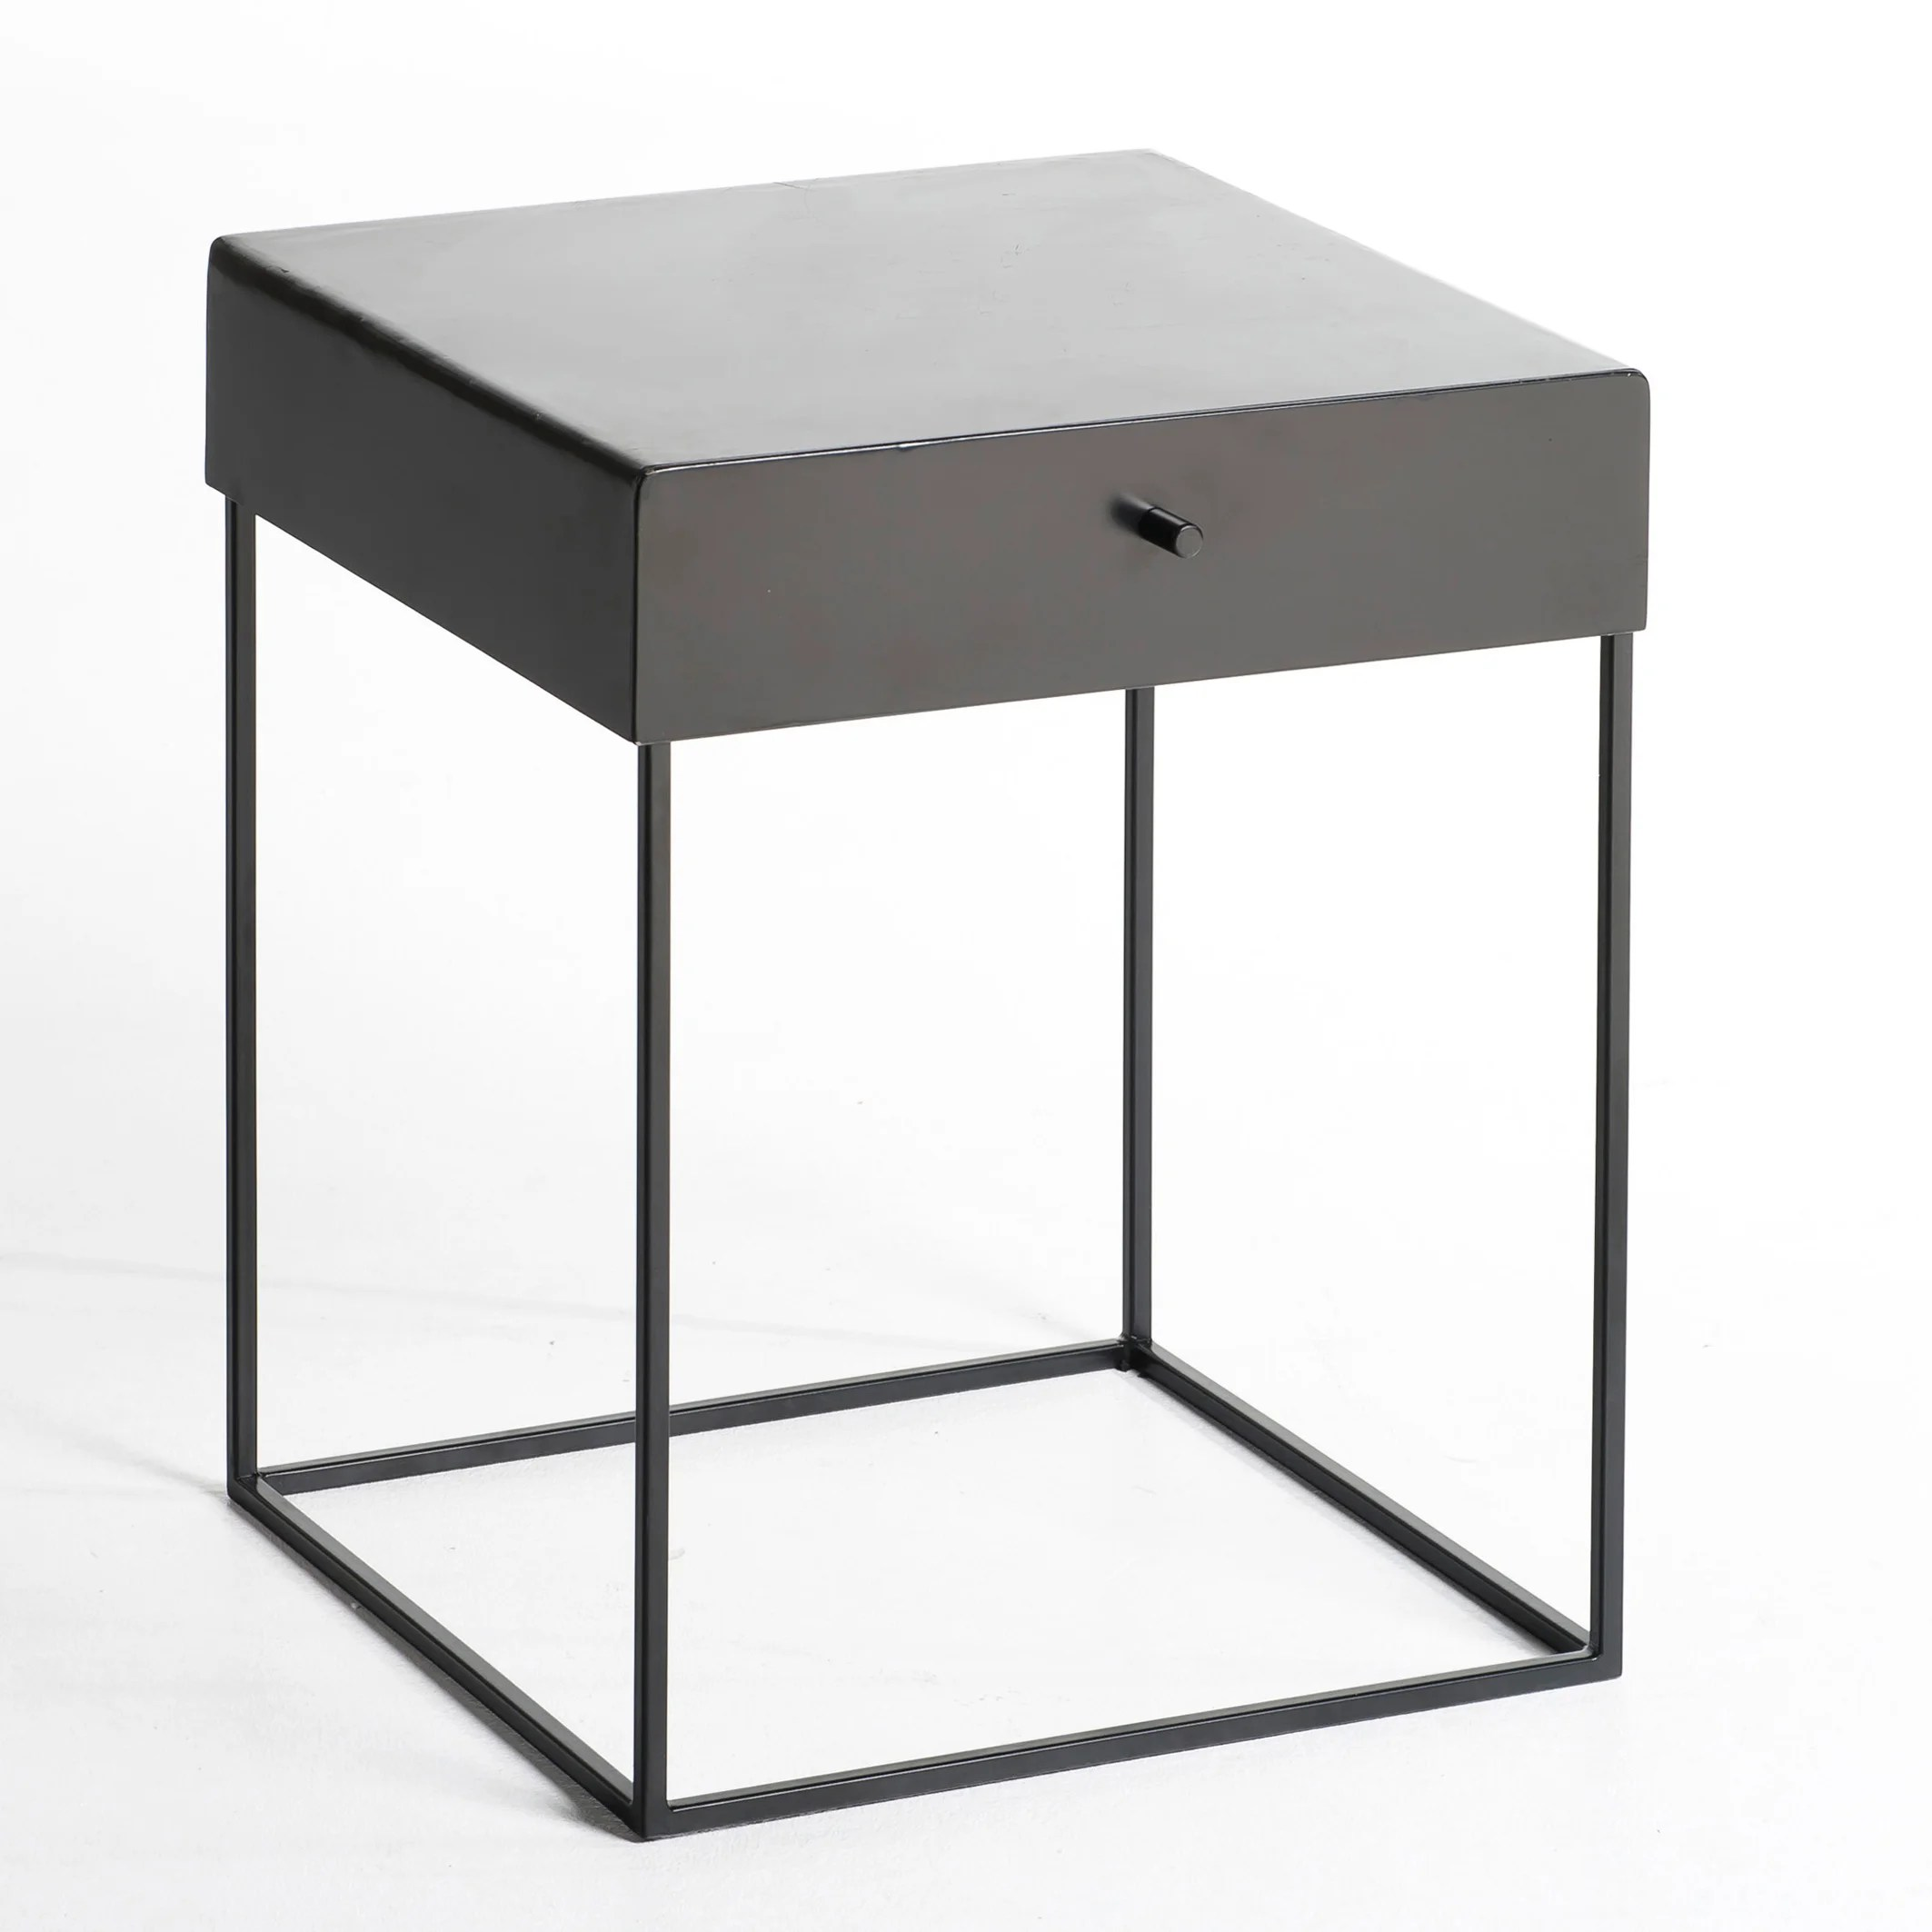 Hypnos metal bedside table AmPm  La Redoute